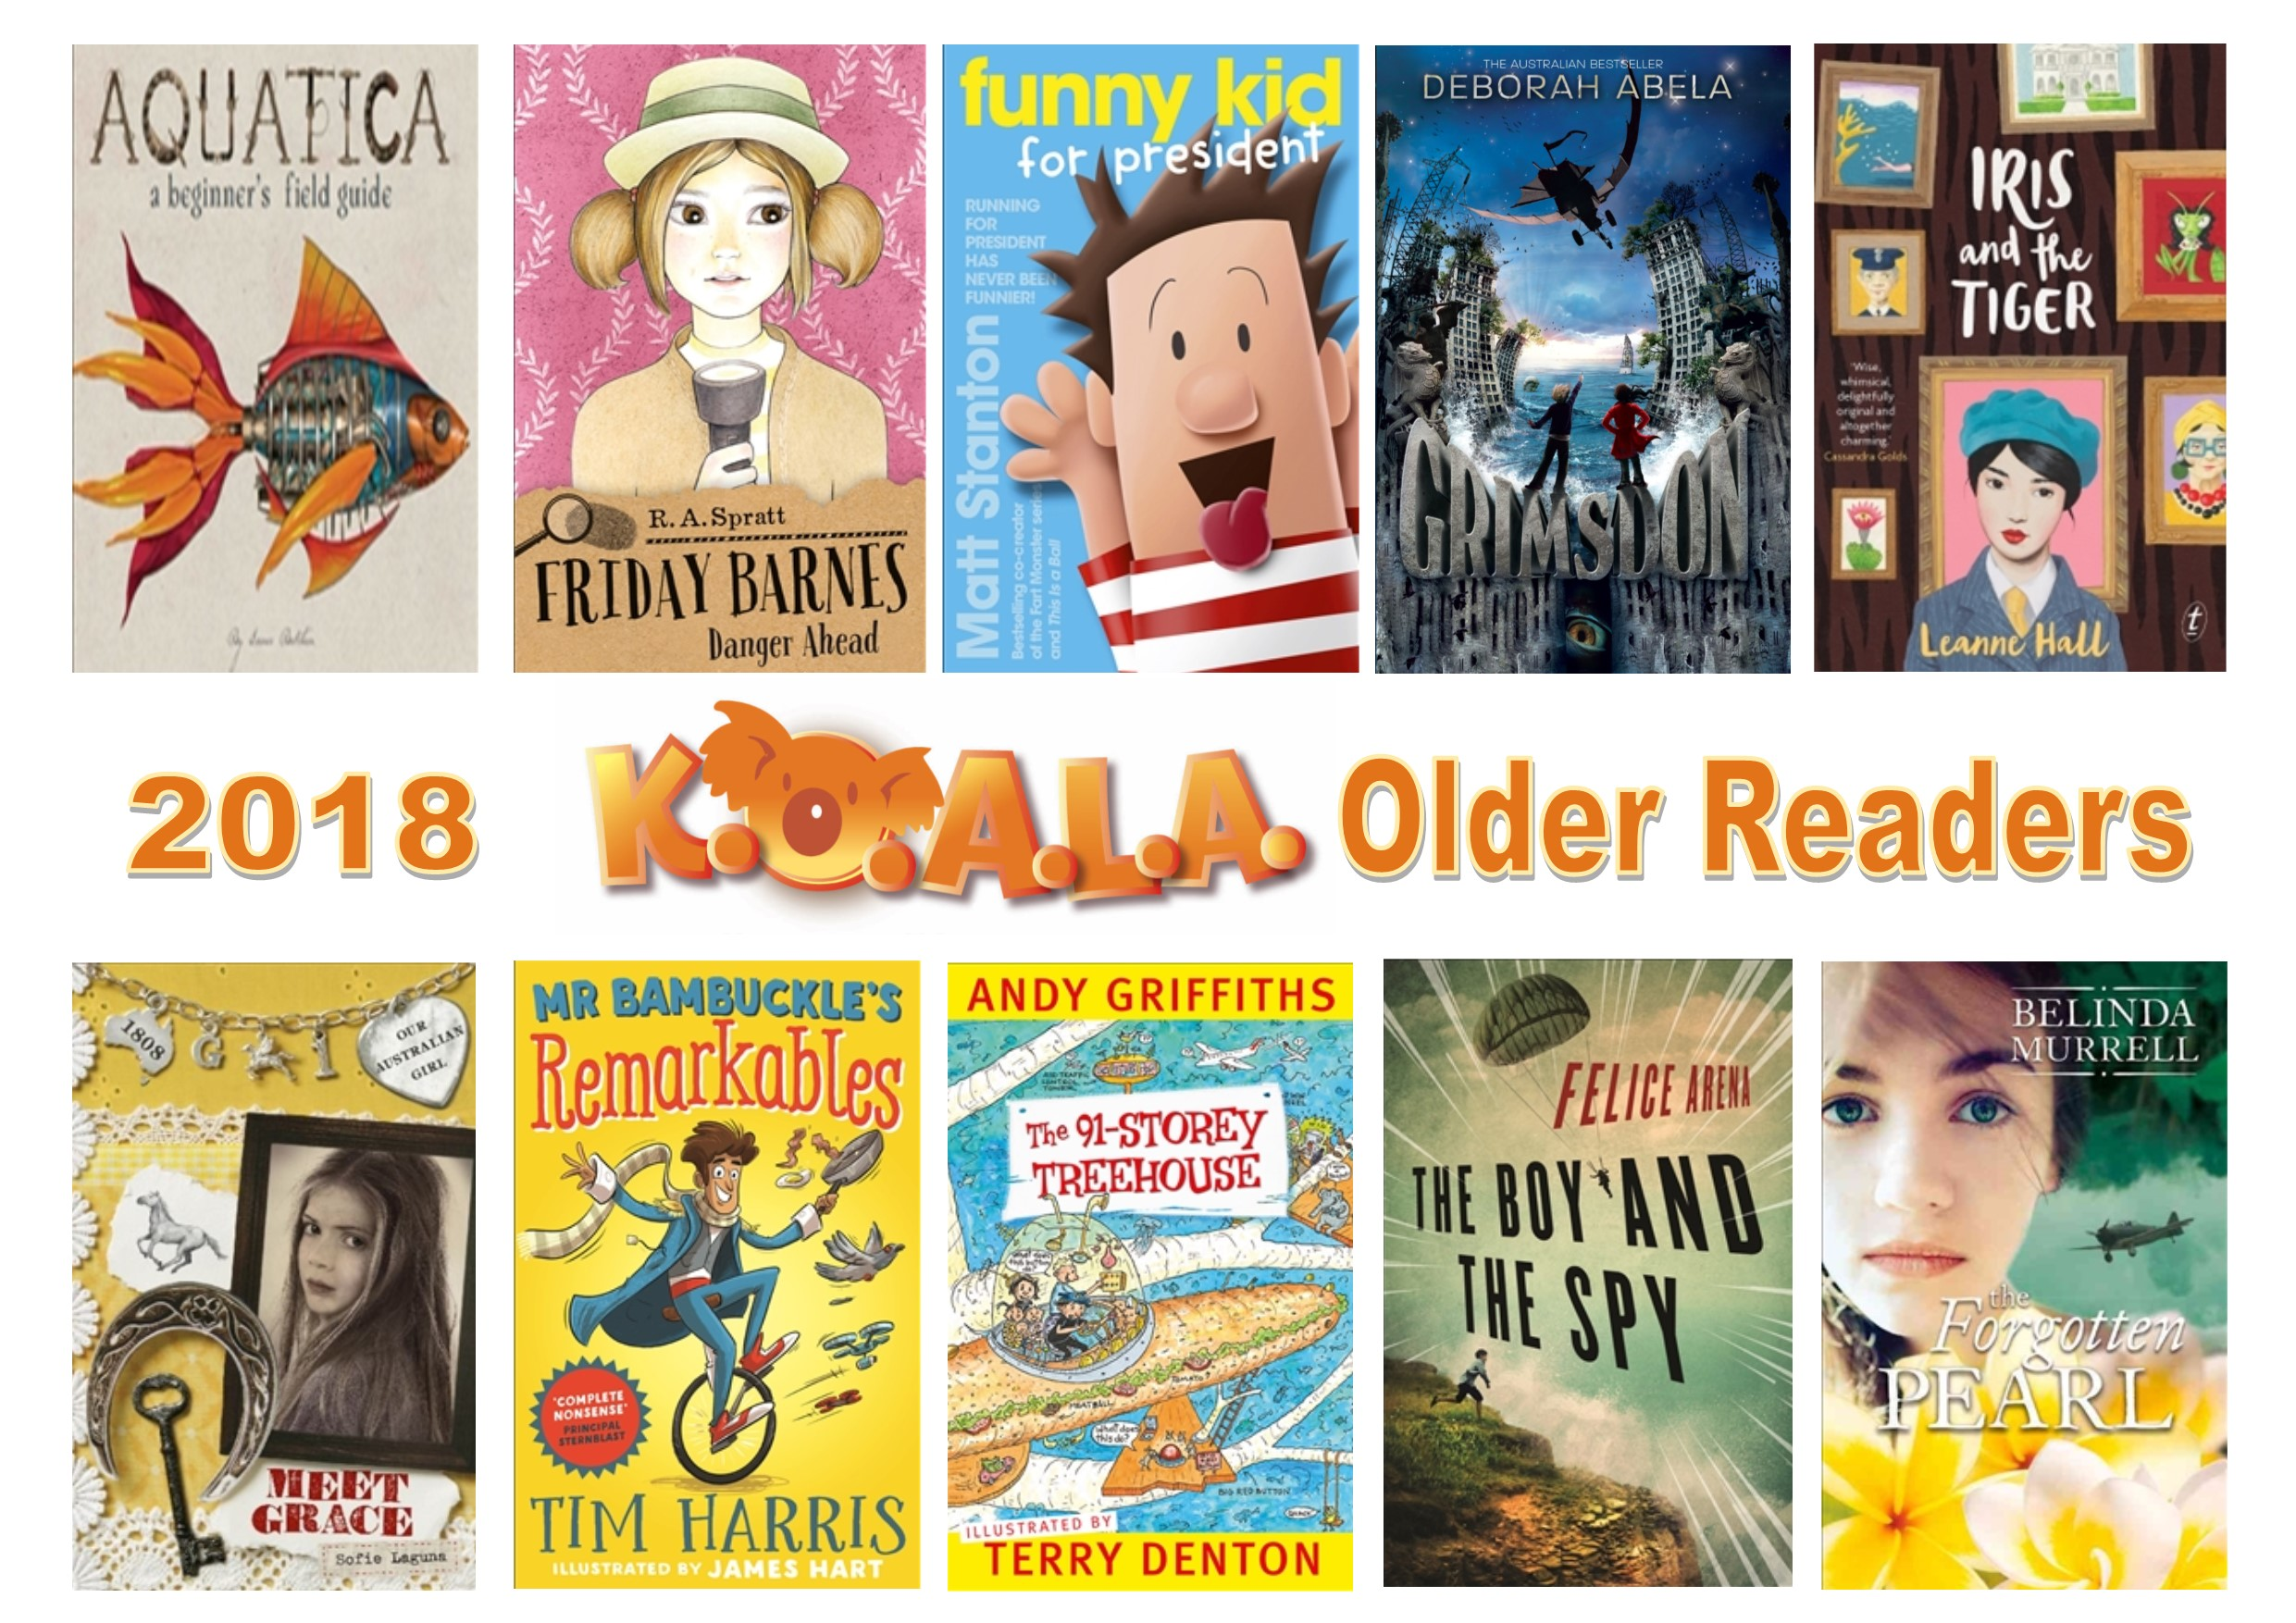 KOALA+Shortlist+Older+Readers+2018+JPeg.jpg